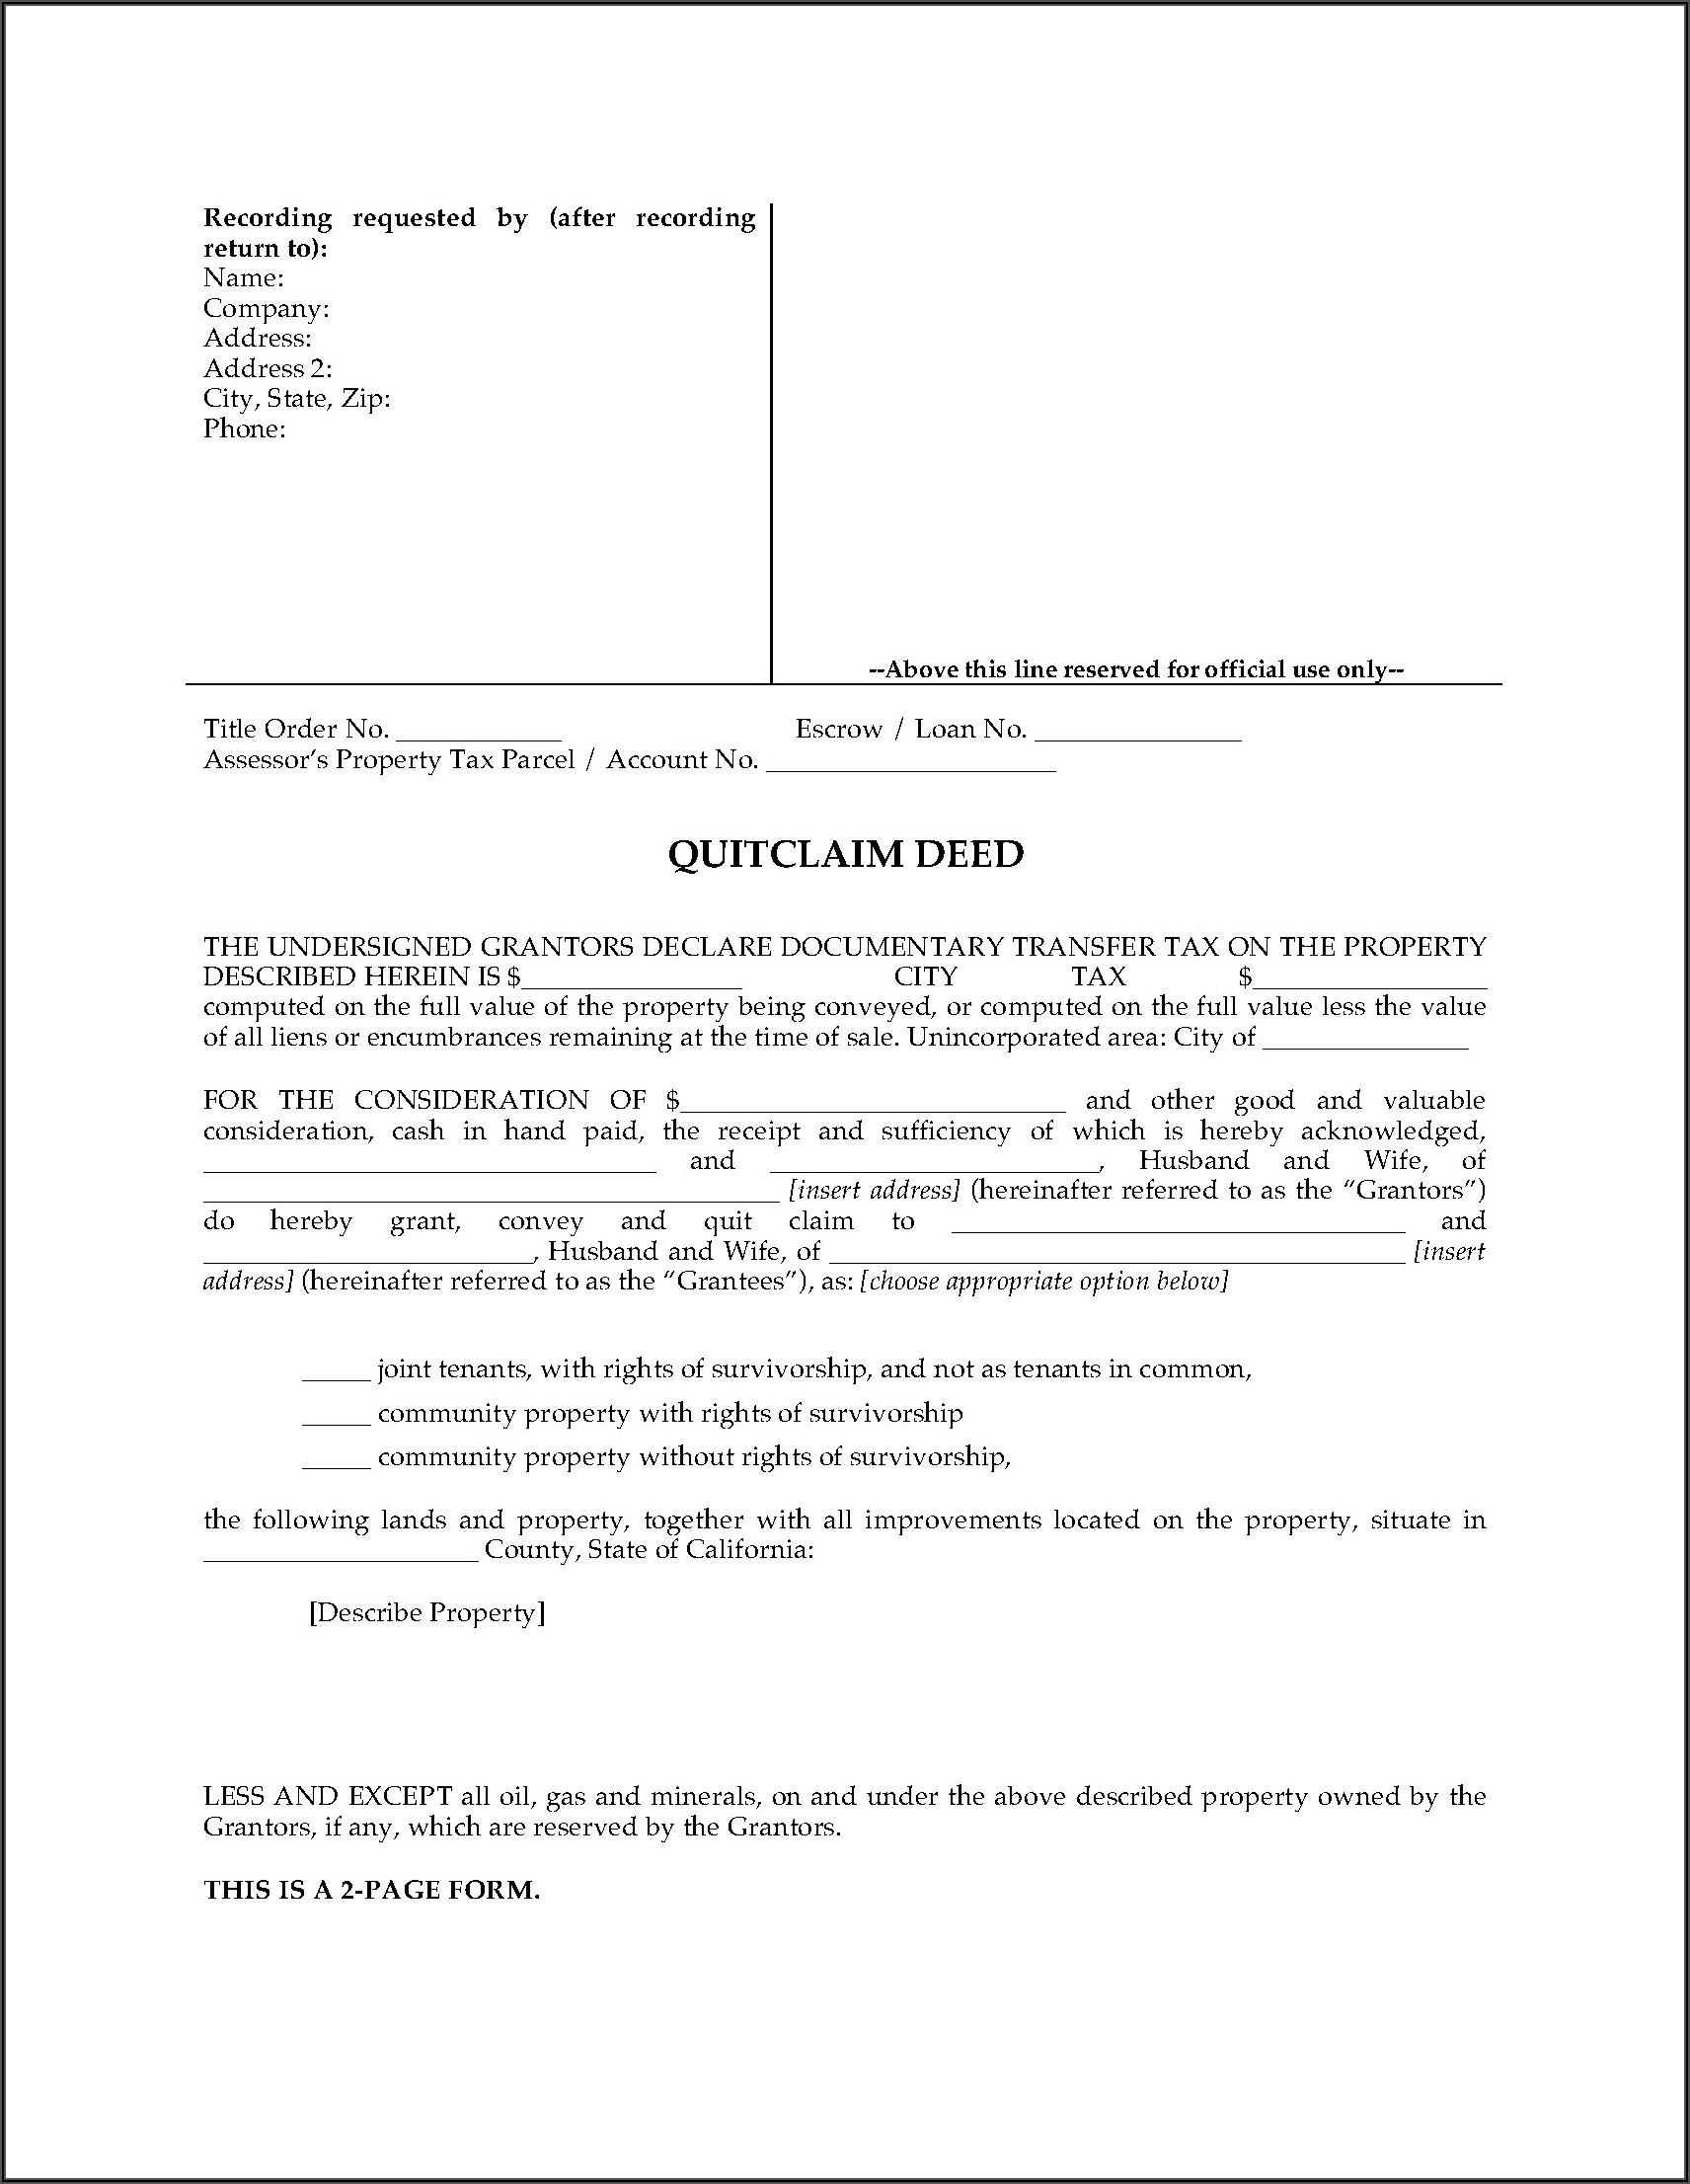 Joint Tenancy Grant Deed Form